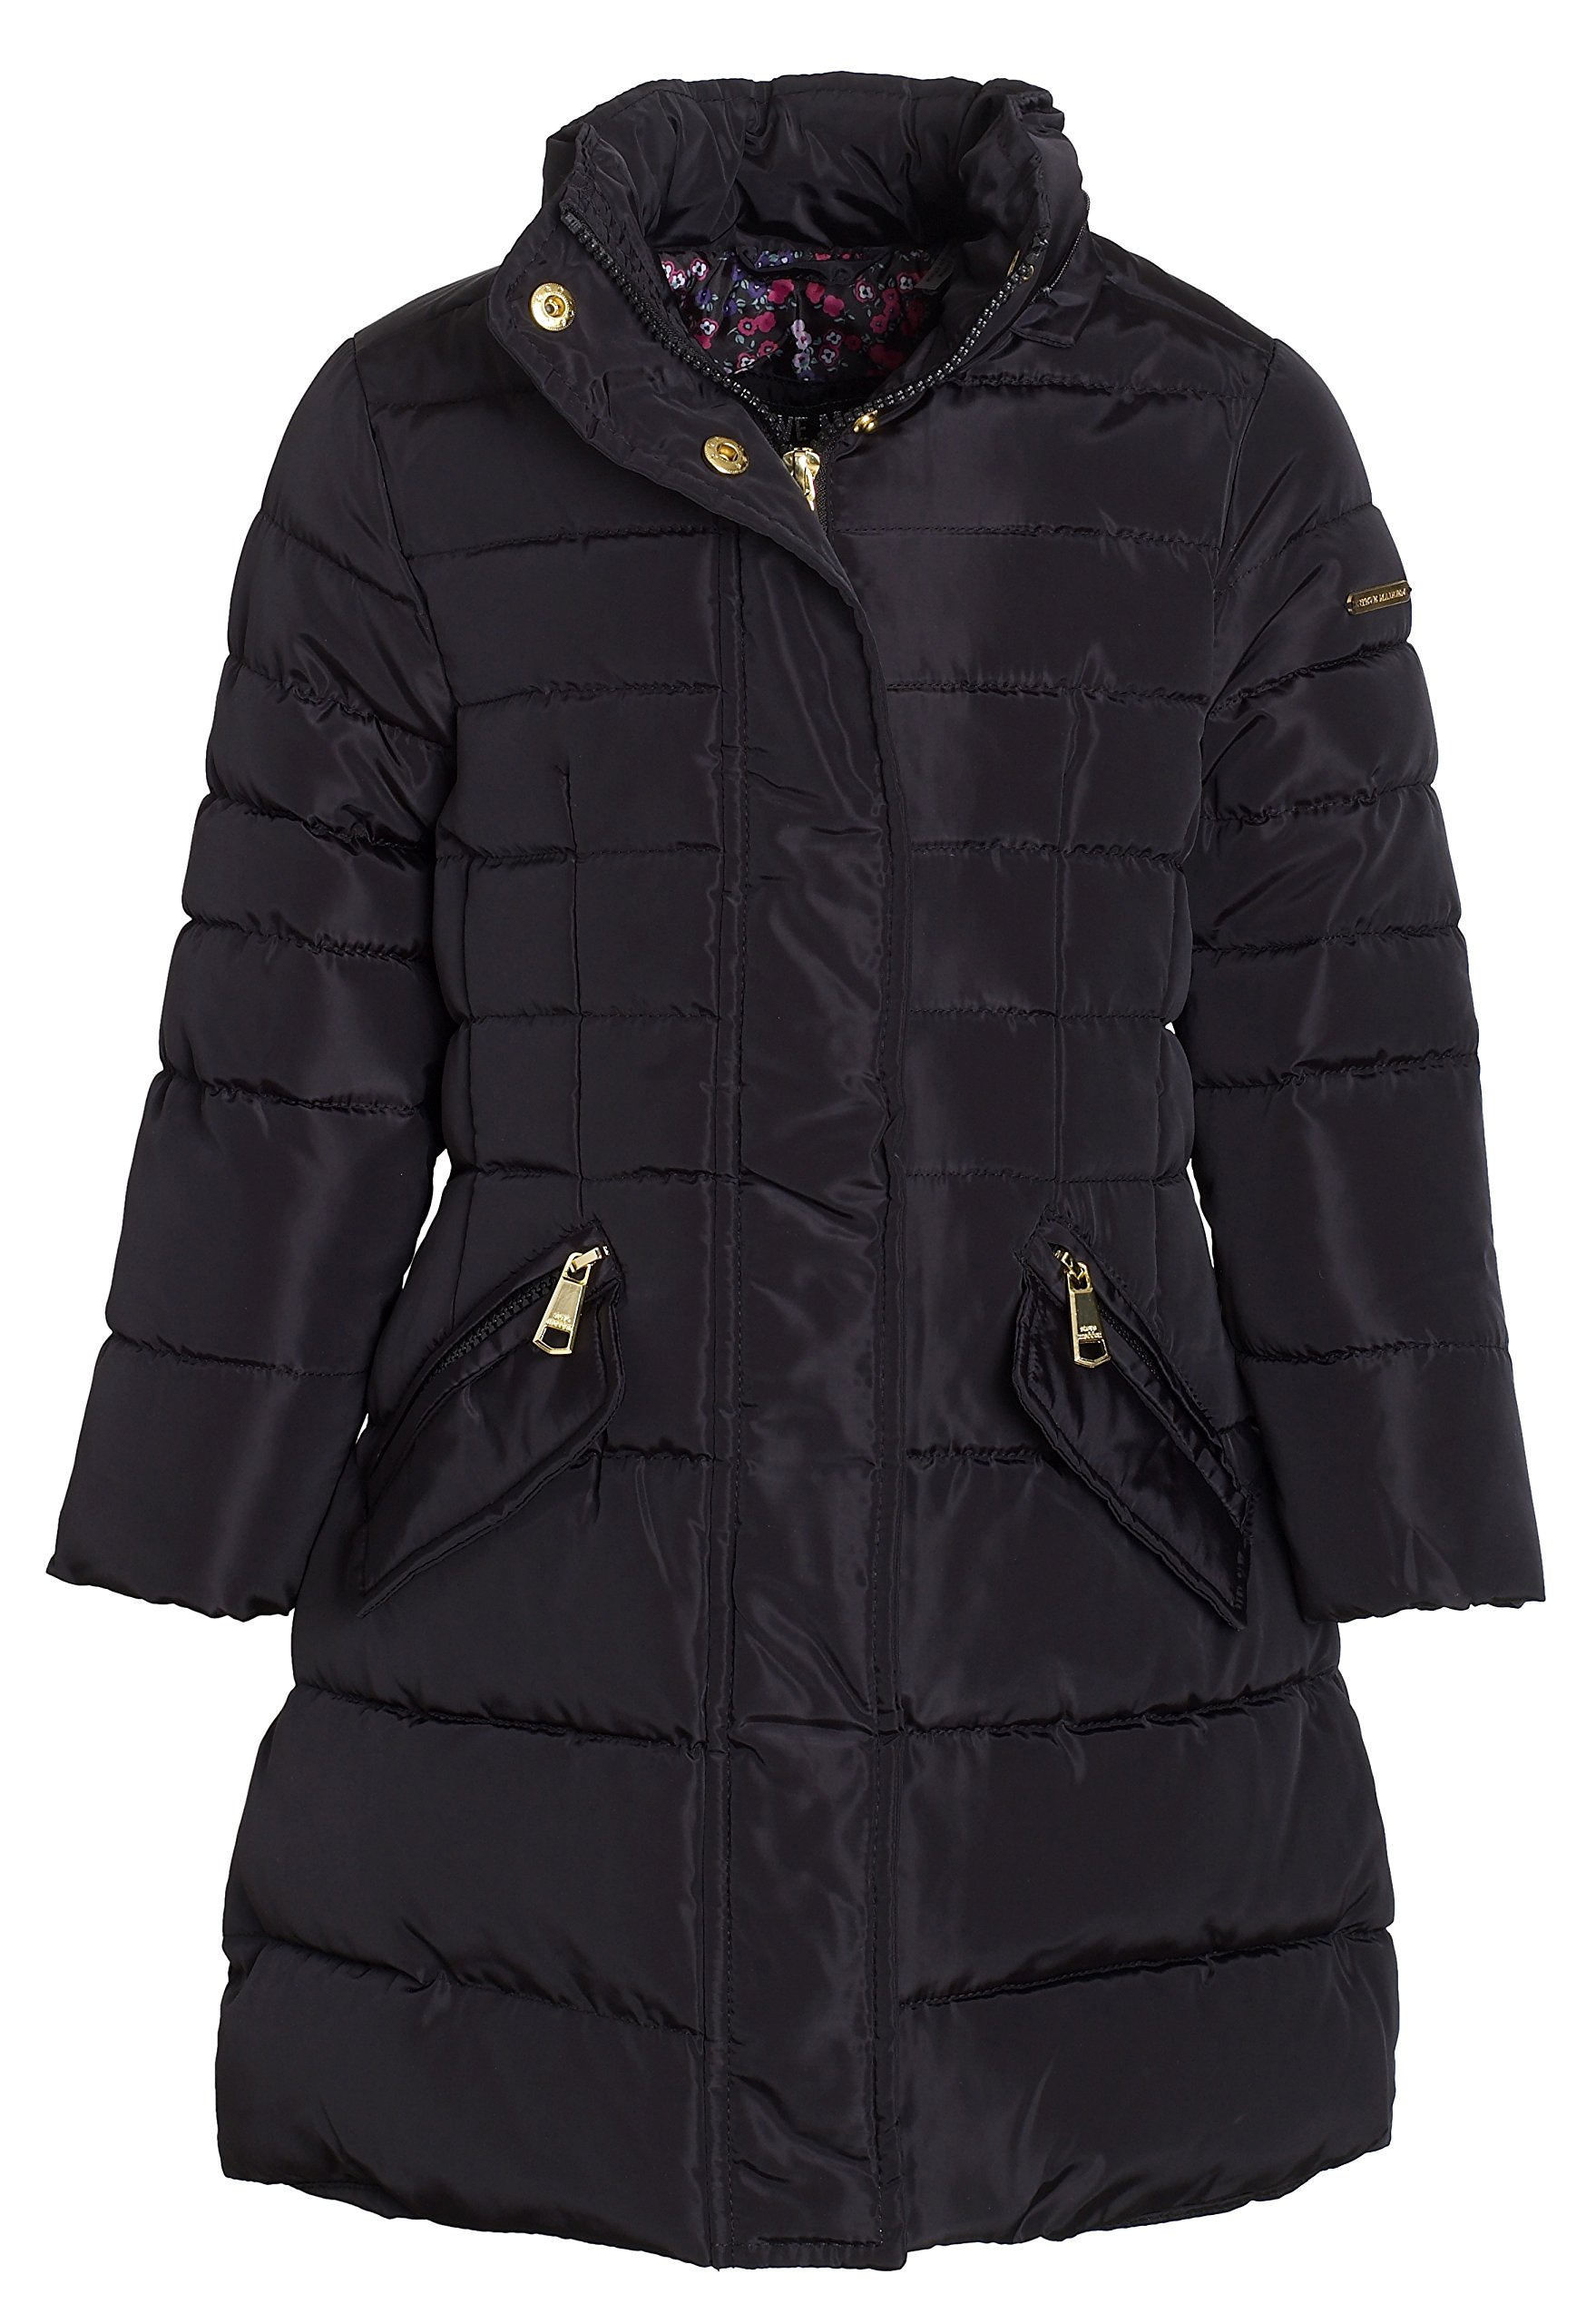 Steve Madden Girls Winter Down Alternative Hooded Long Bubble Puffer Jacket Coat - Black (Size 5/6)